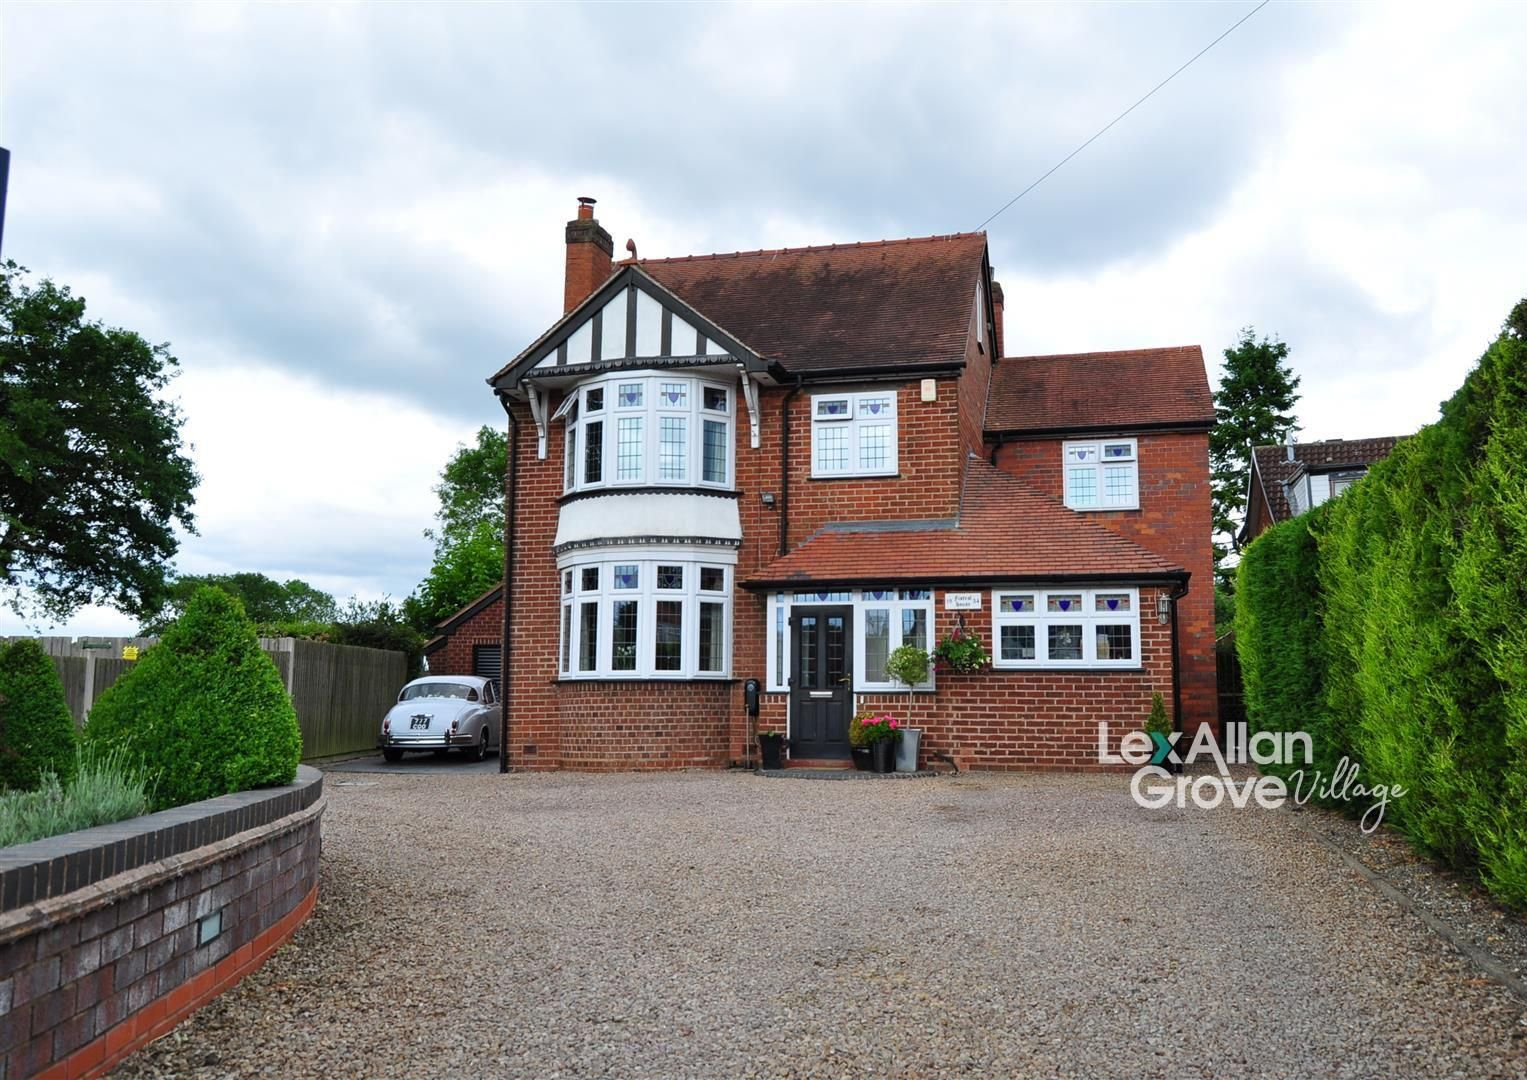 4 bed detached for sale in Hunnington, B62